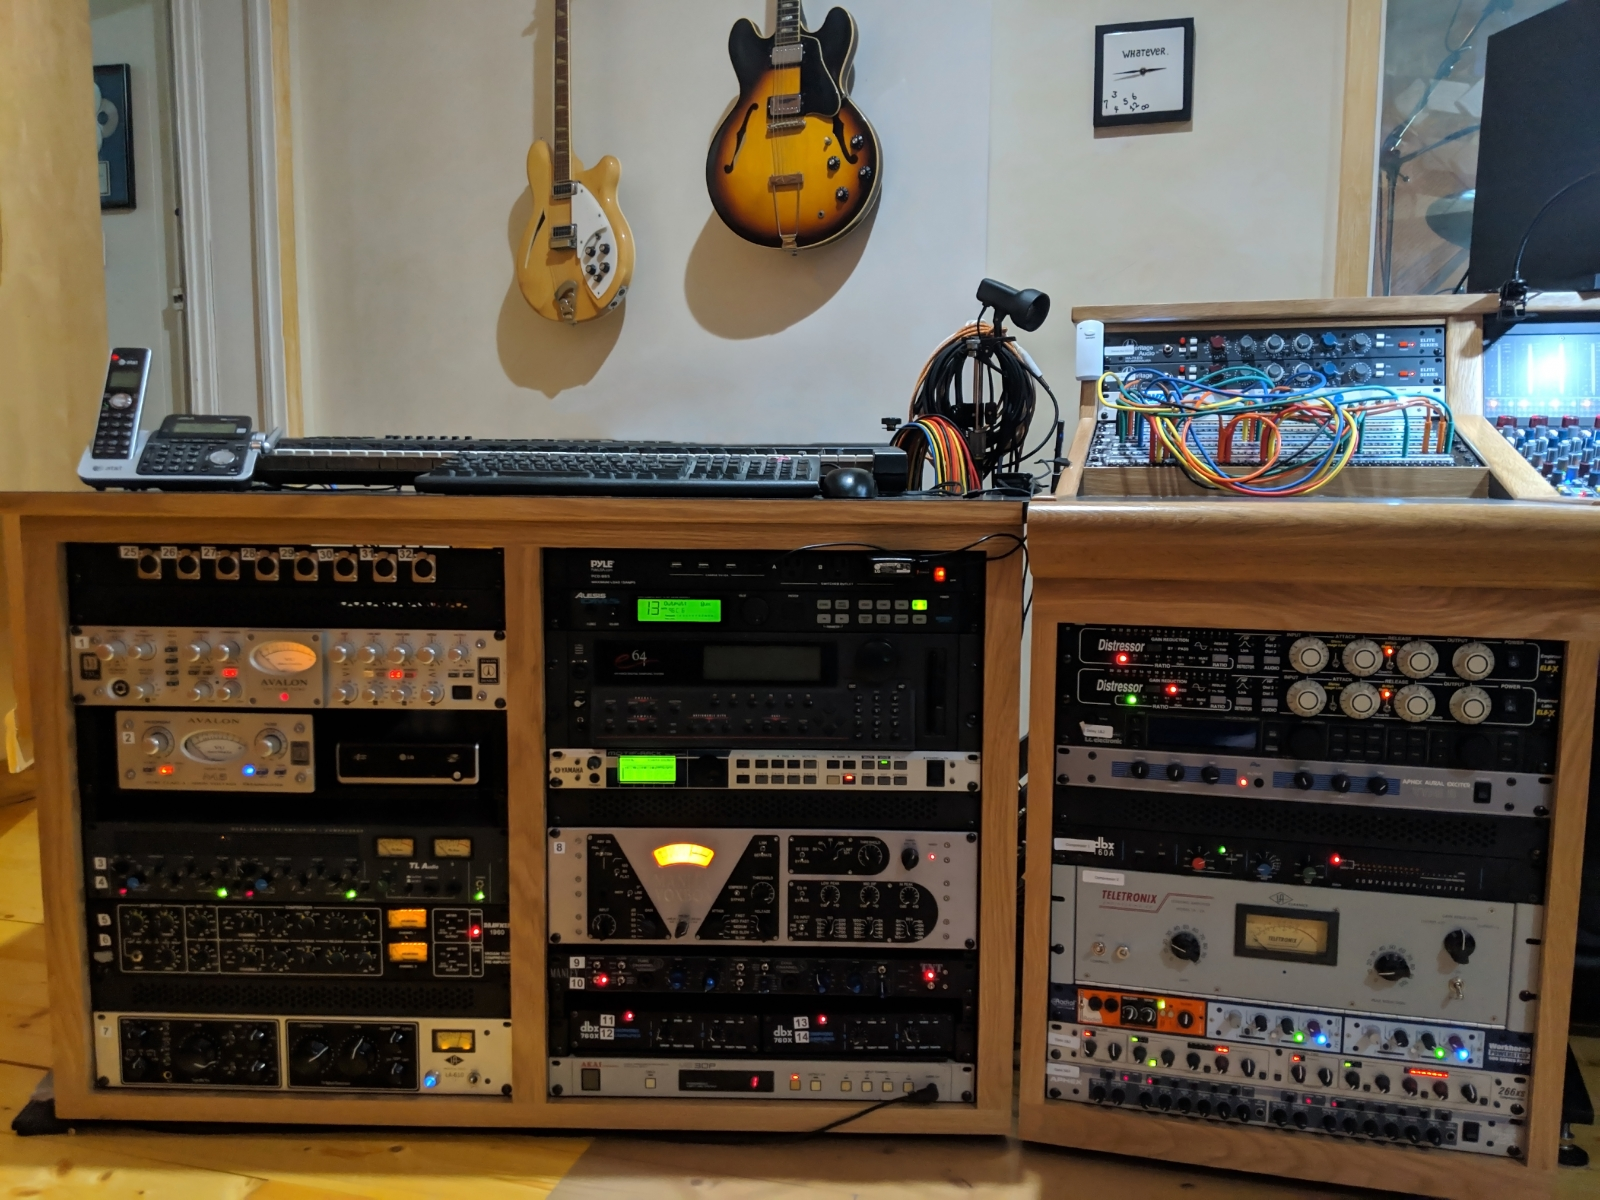 Full complement of outboard gear from Universal Audio, Avalon, Manley, Teletronix, Neve, TL Audio, and more.